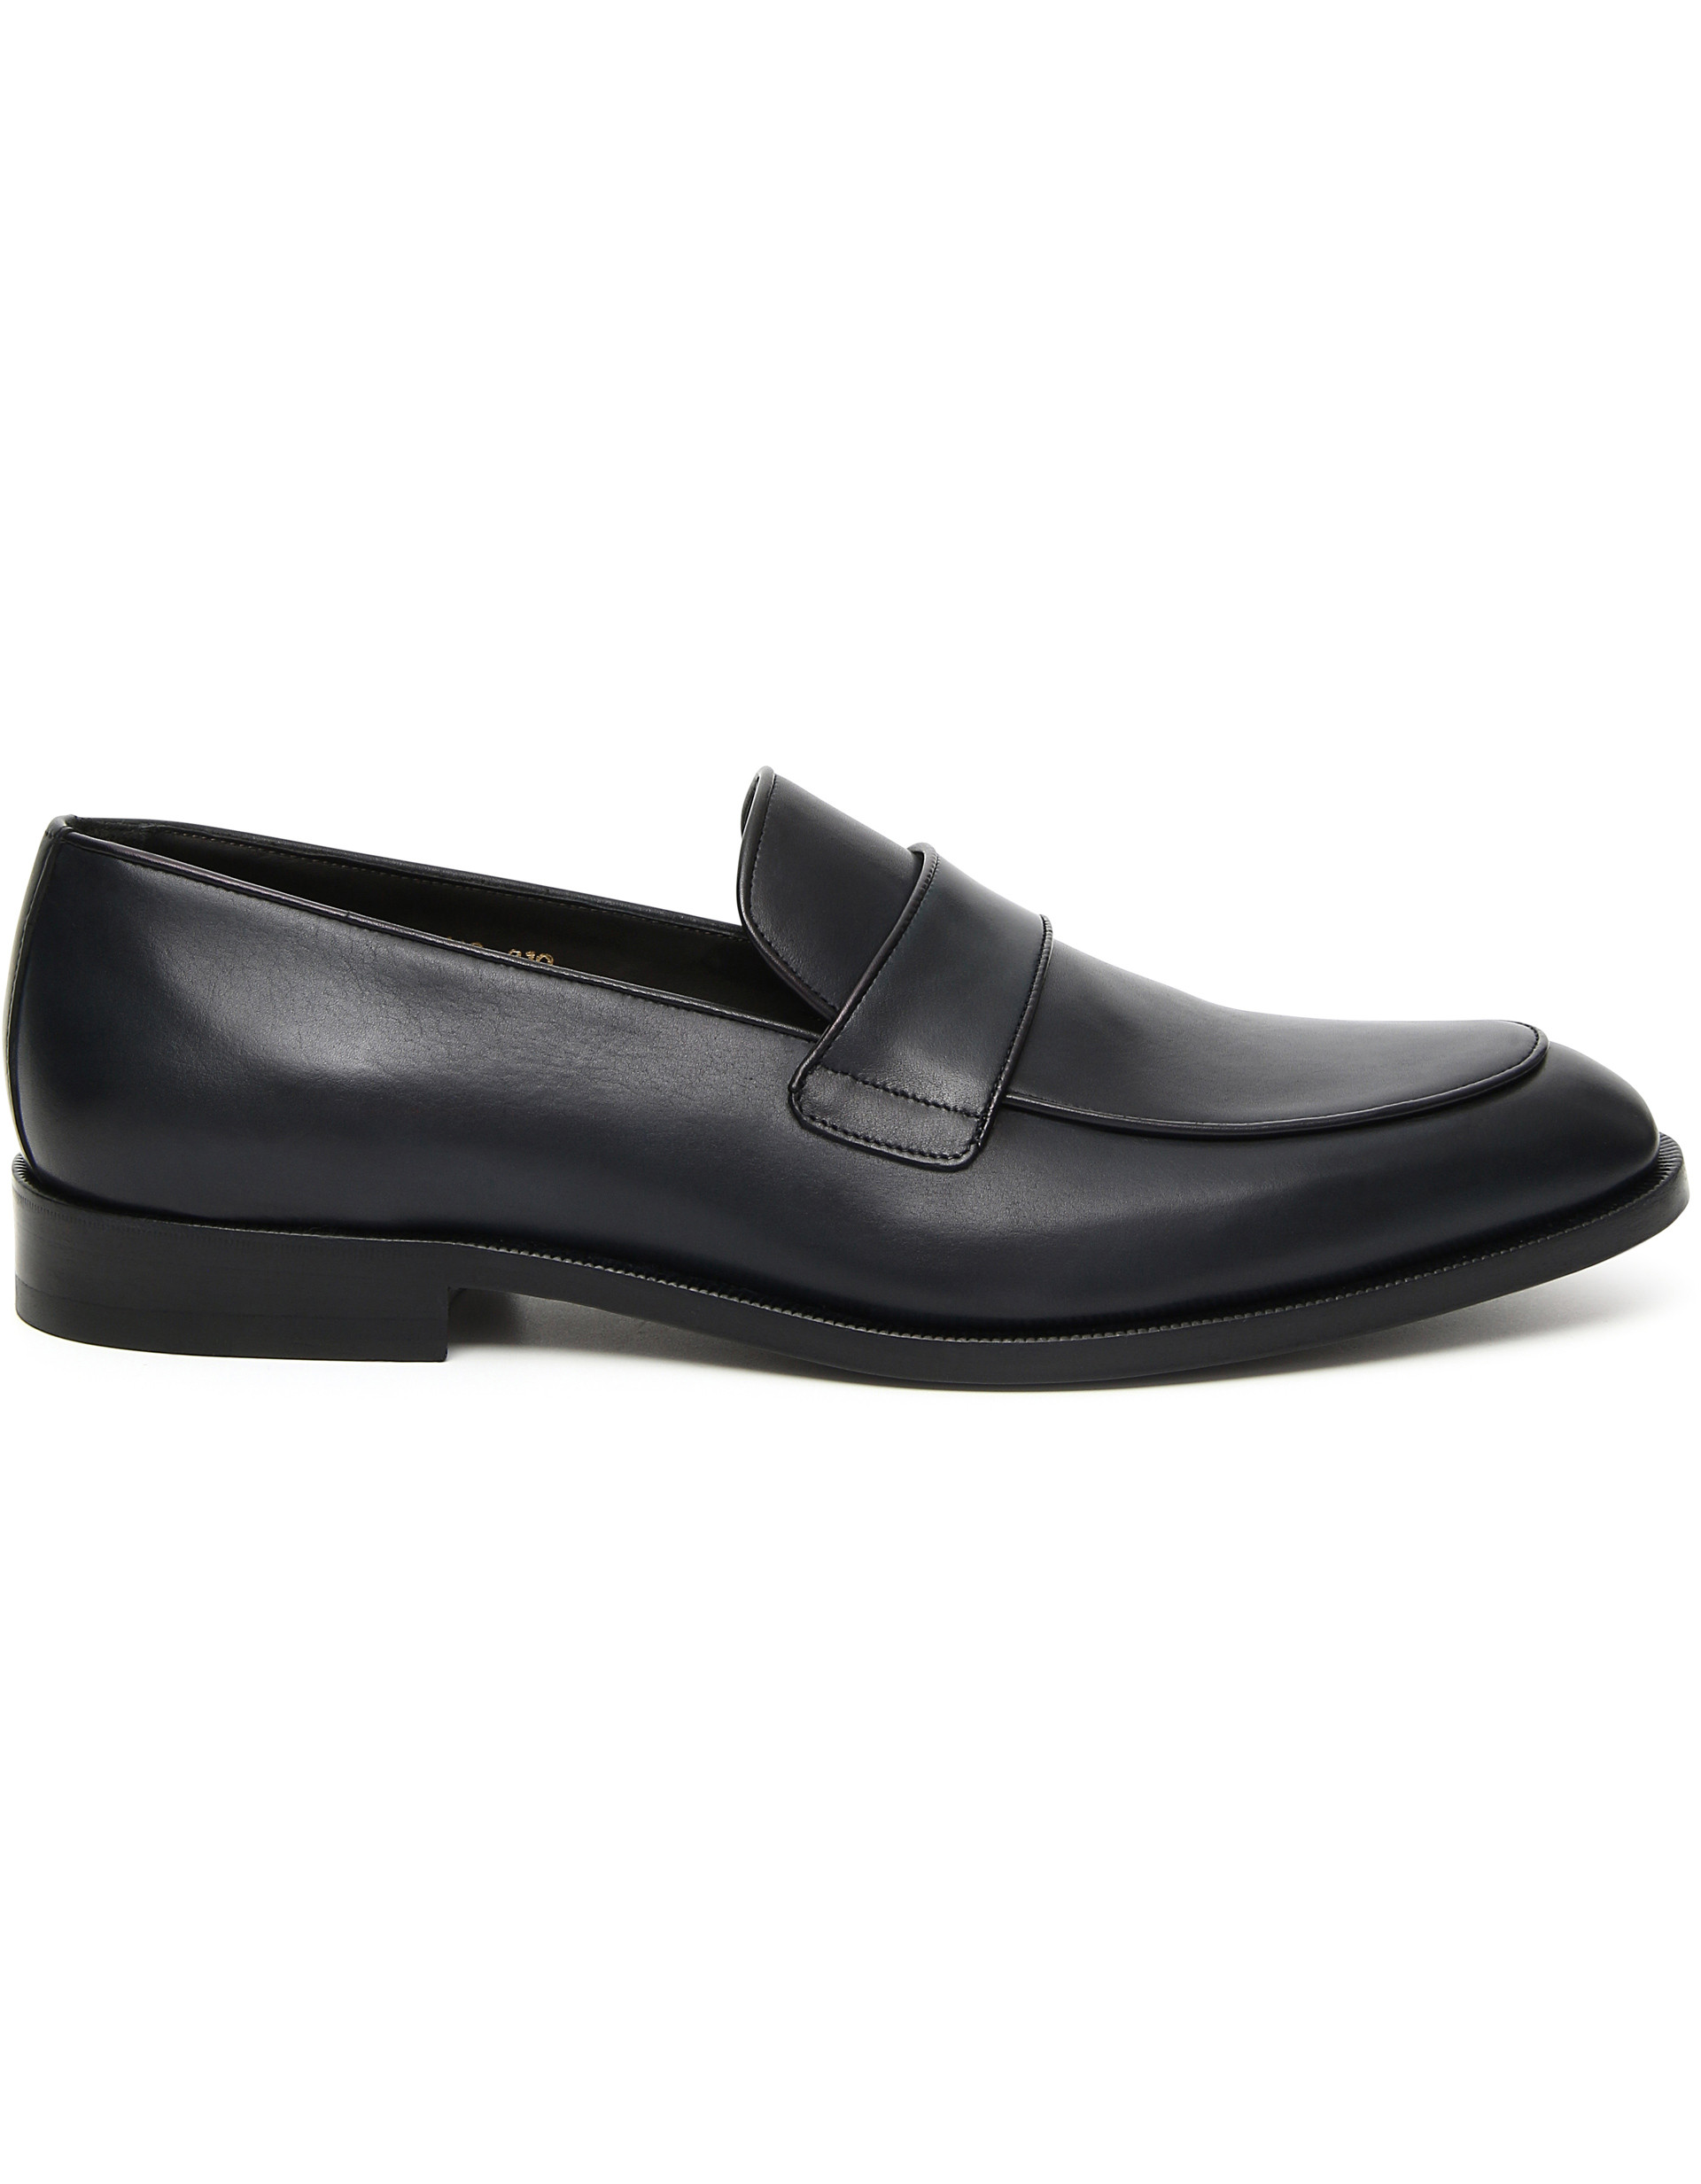 Navy blue loafers in buffed calfskin